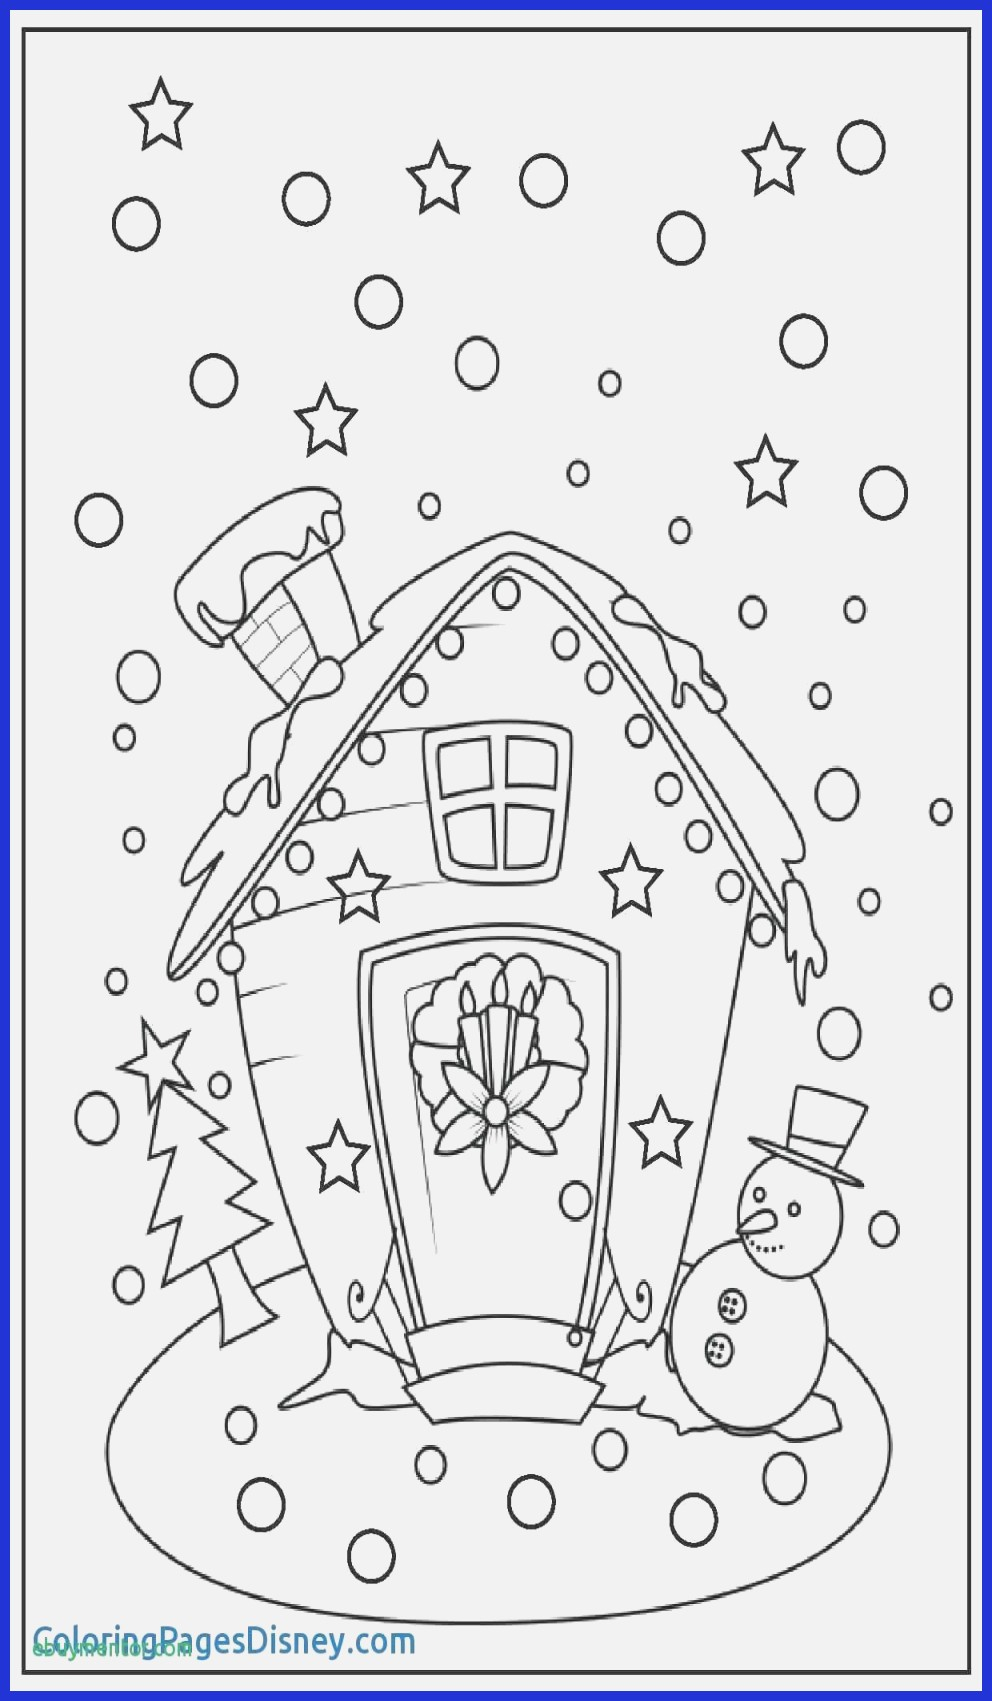 Adult Coloring Pages Trucks Coloring Pages Nick Jr Blaze Coloring Pages Lovely Book And The